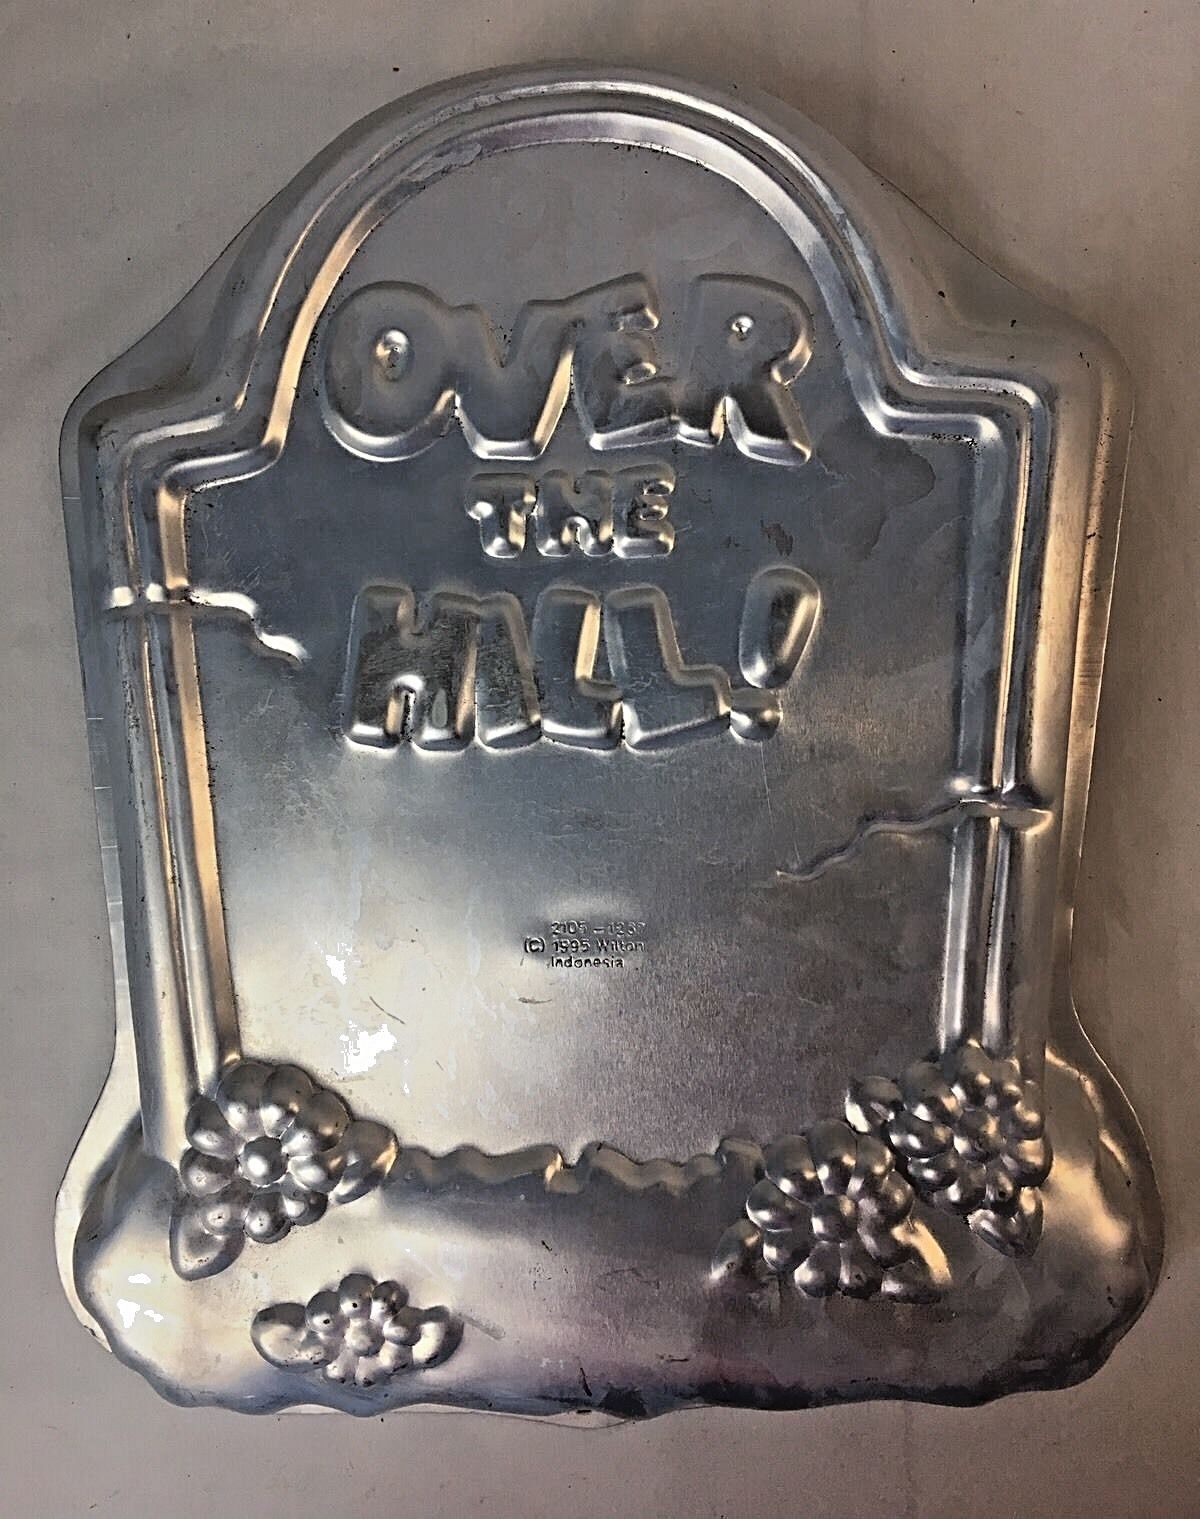 Vintage Over the Hill Cake Pan Mold Tombstone 2105-1237 40th 50th Birthday 1995 - $9.95